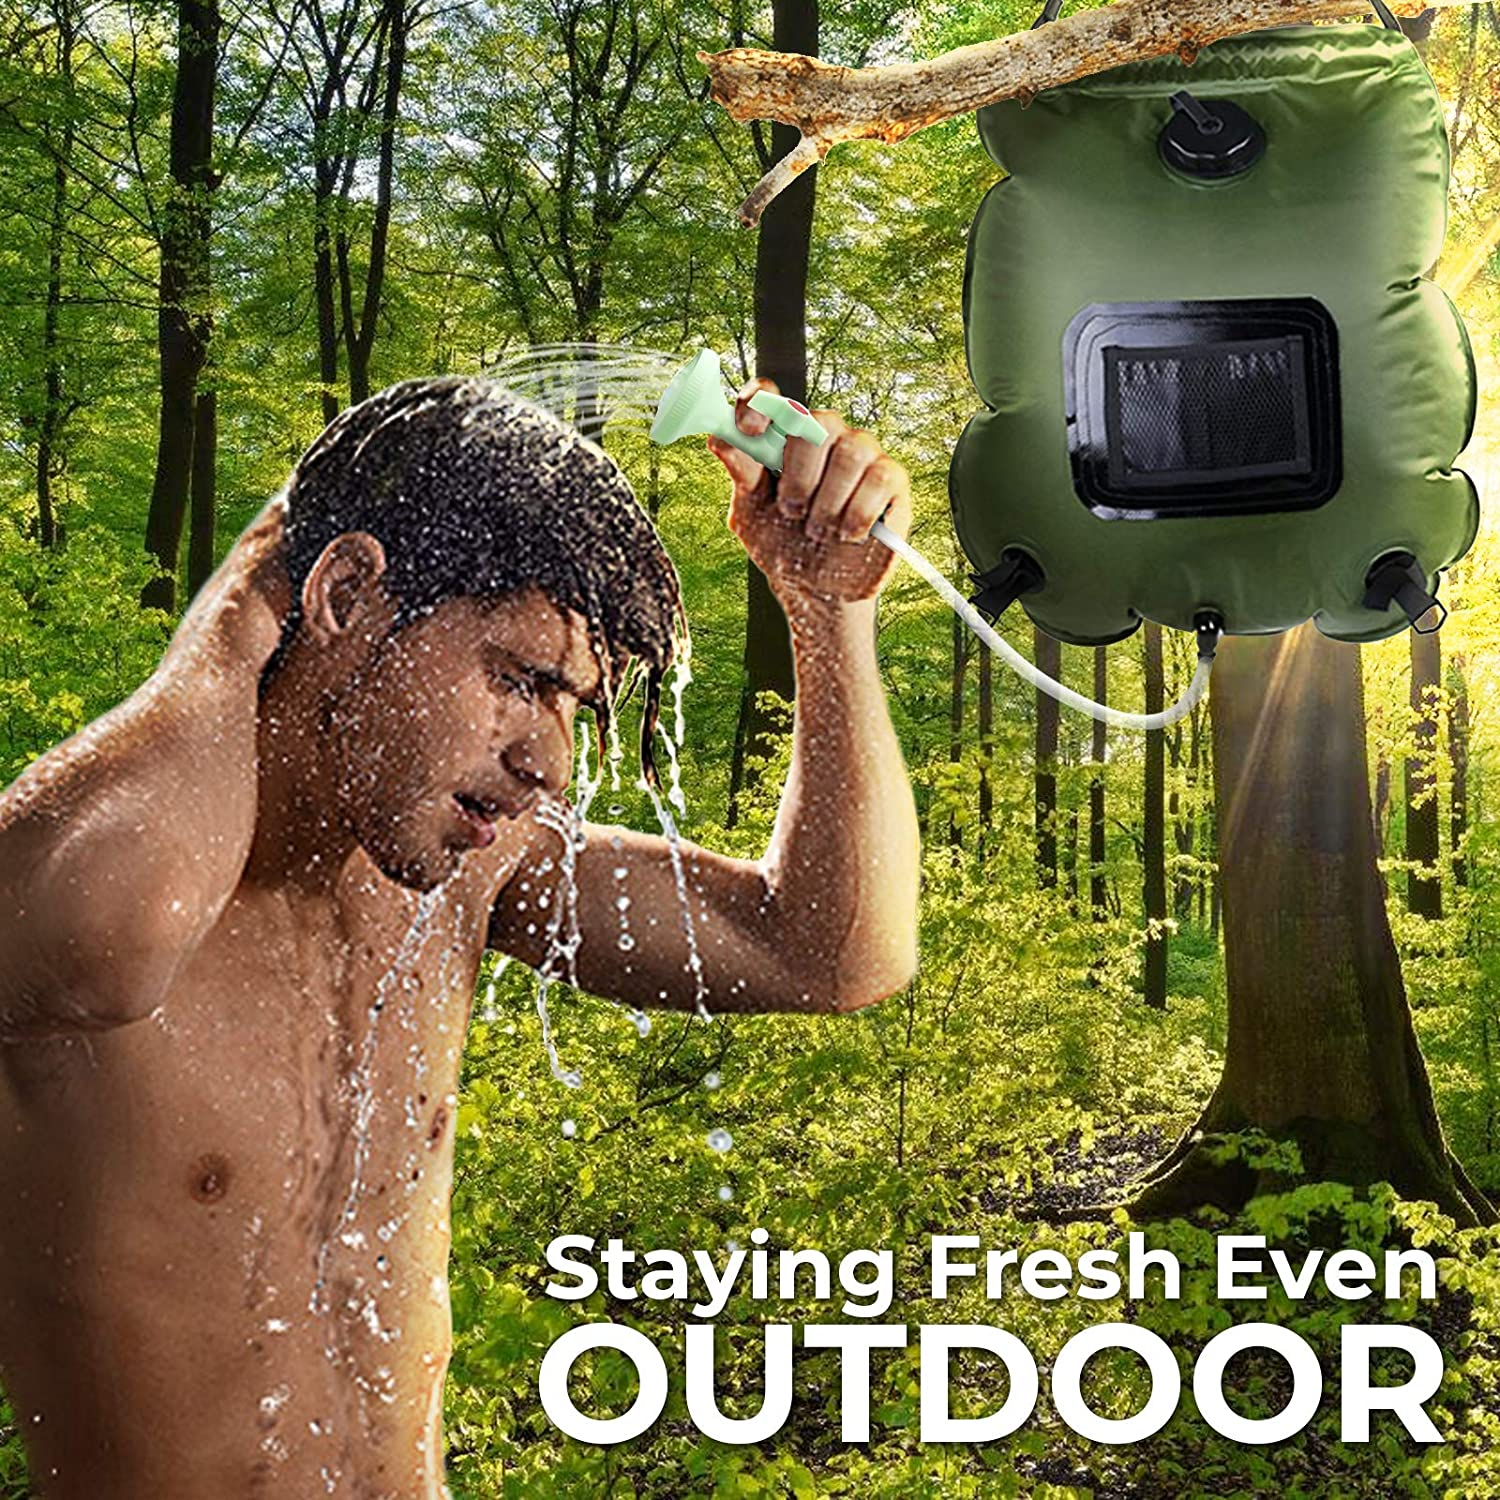 Off Switchable Shower Head and Removable Hose for Camping Hiking Traveling Beach Swimming Outdoor with 5 gallons//20L Solar Shower Bag ComfyDegree Shower Bag On